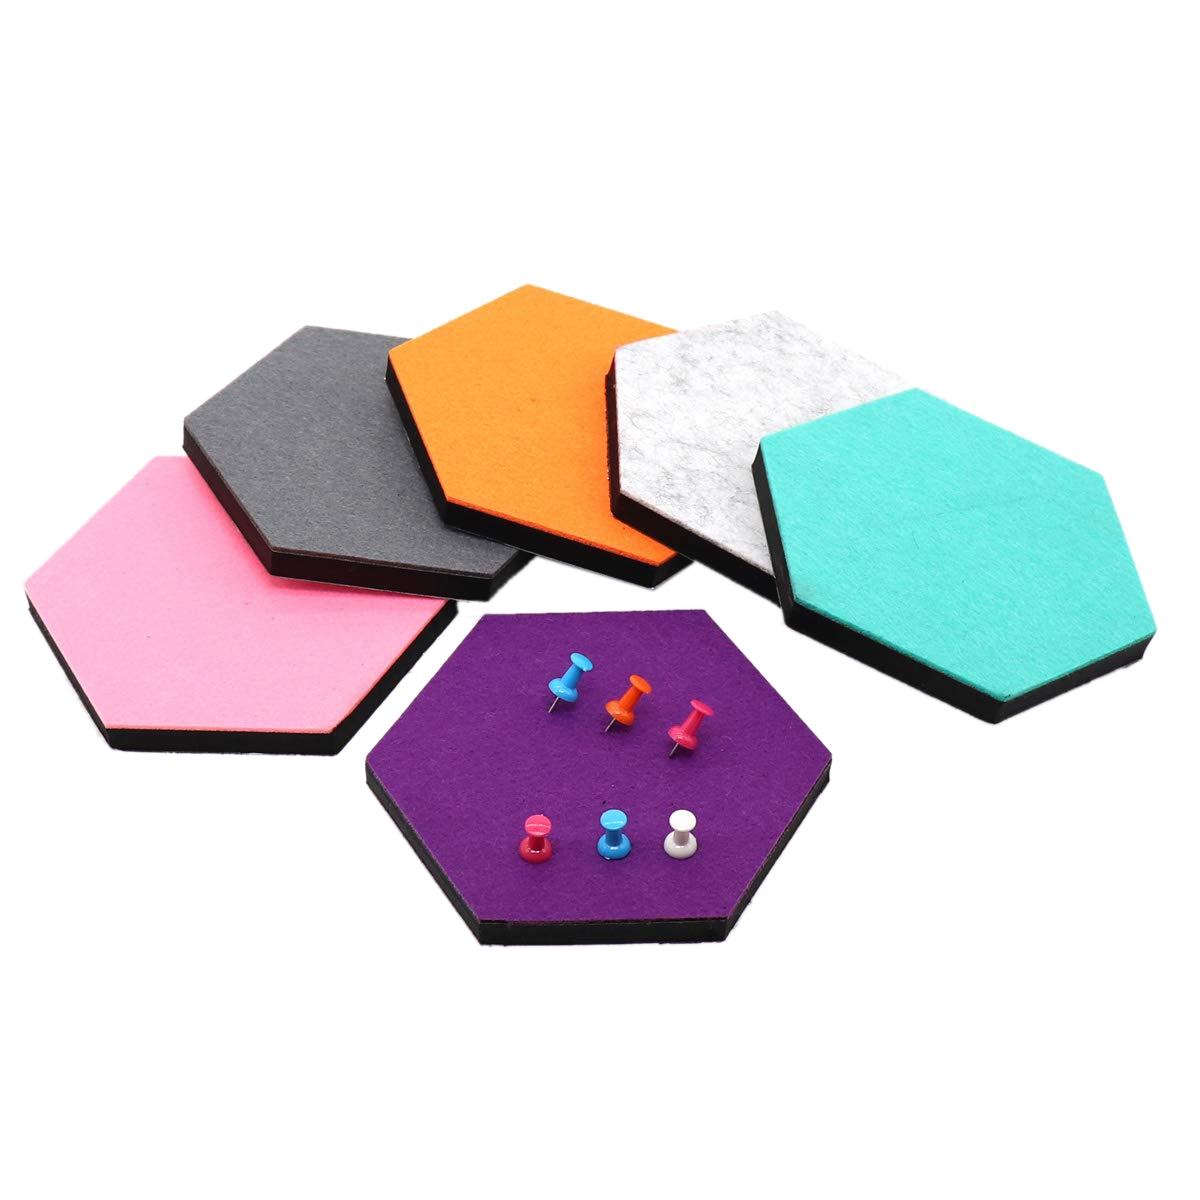 Best Set Of 6 Hexagon Felt Pin Board Self Adhesive Bulletin Memo Photo Cork Boards Colorful Foam Wall Decorative Tiles With 6